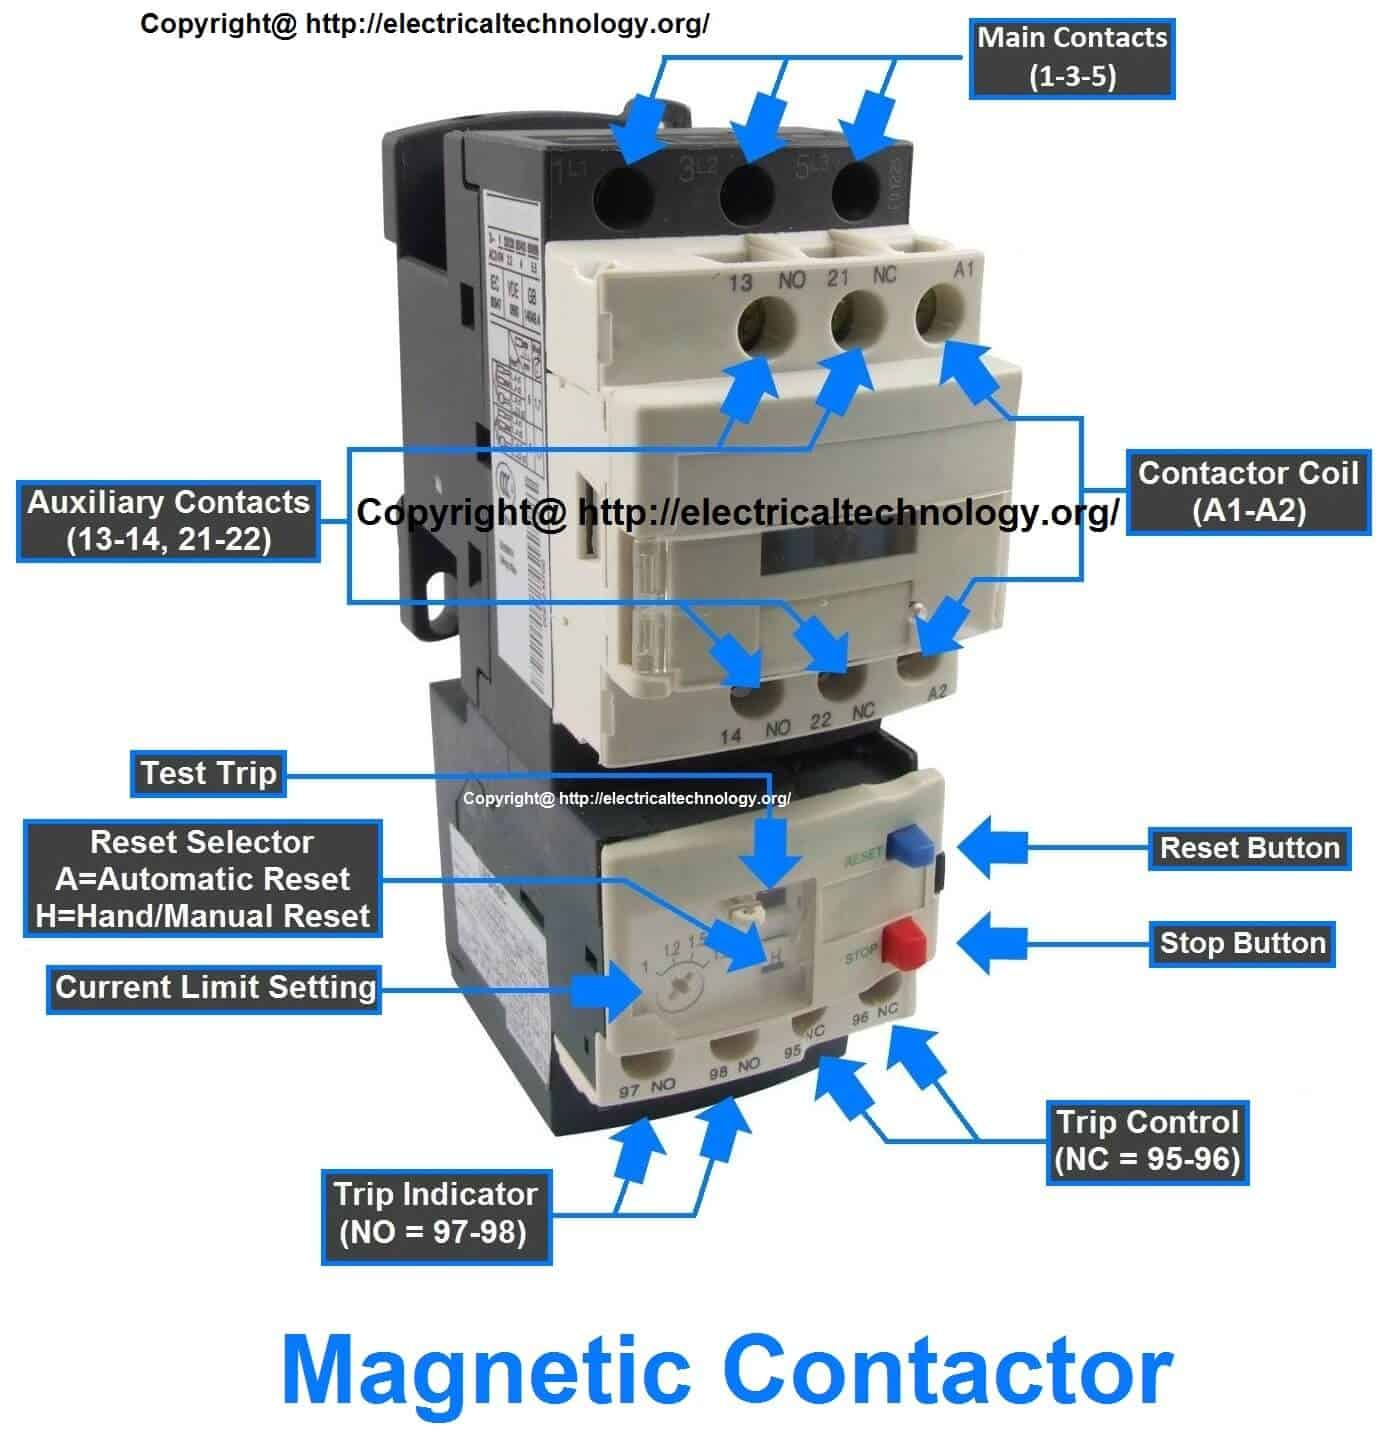 Wiring Diagram For Overload Relay : What is electrical contactor magnetic contactors